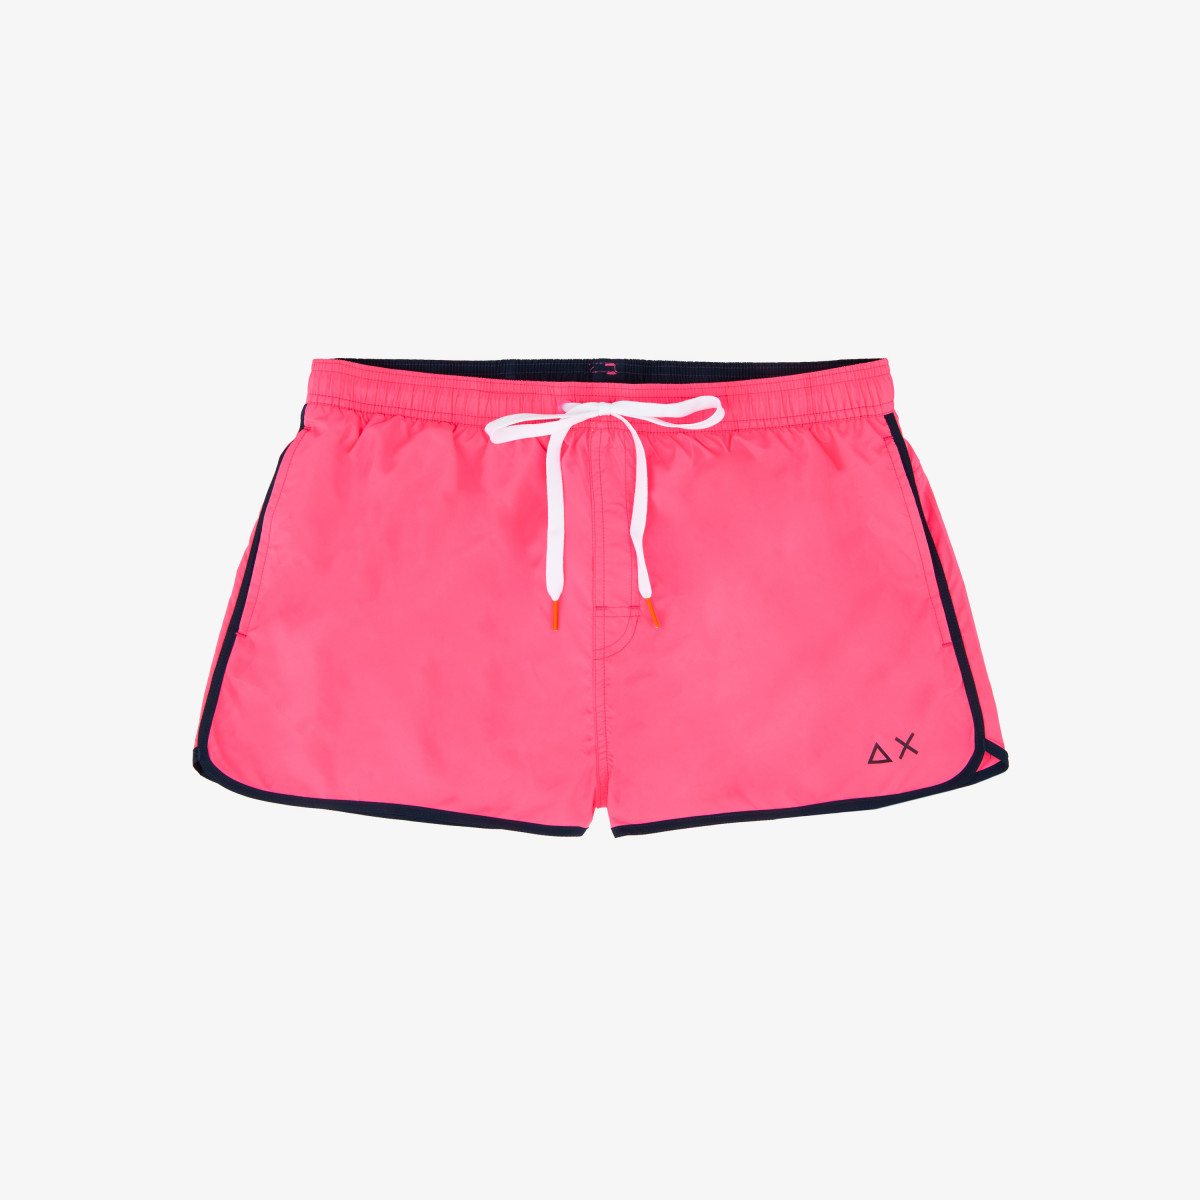 SWIM PANT SOLID BINDING SMALL LOGO FUXIA FLUO